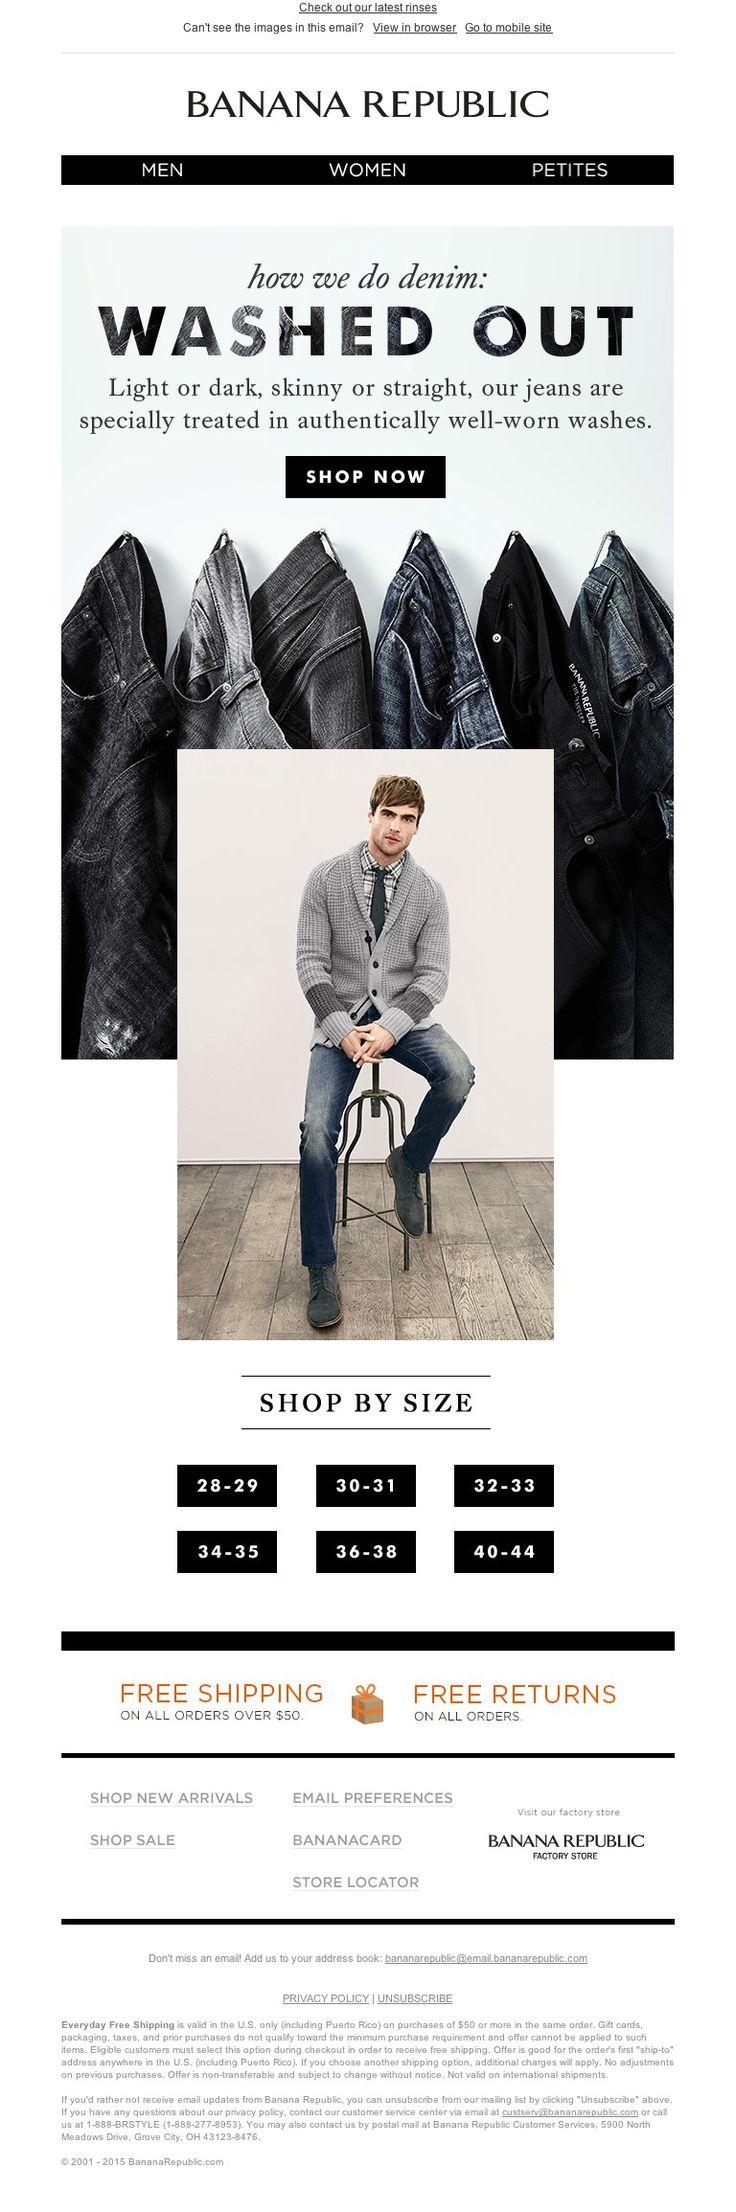 Hey! The struggle to work with catalog aspect ratio is real. Good solve. !!! Banana Republic - It's a wash (as in cool new denim)